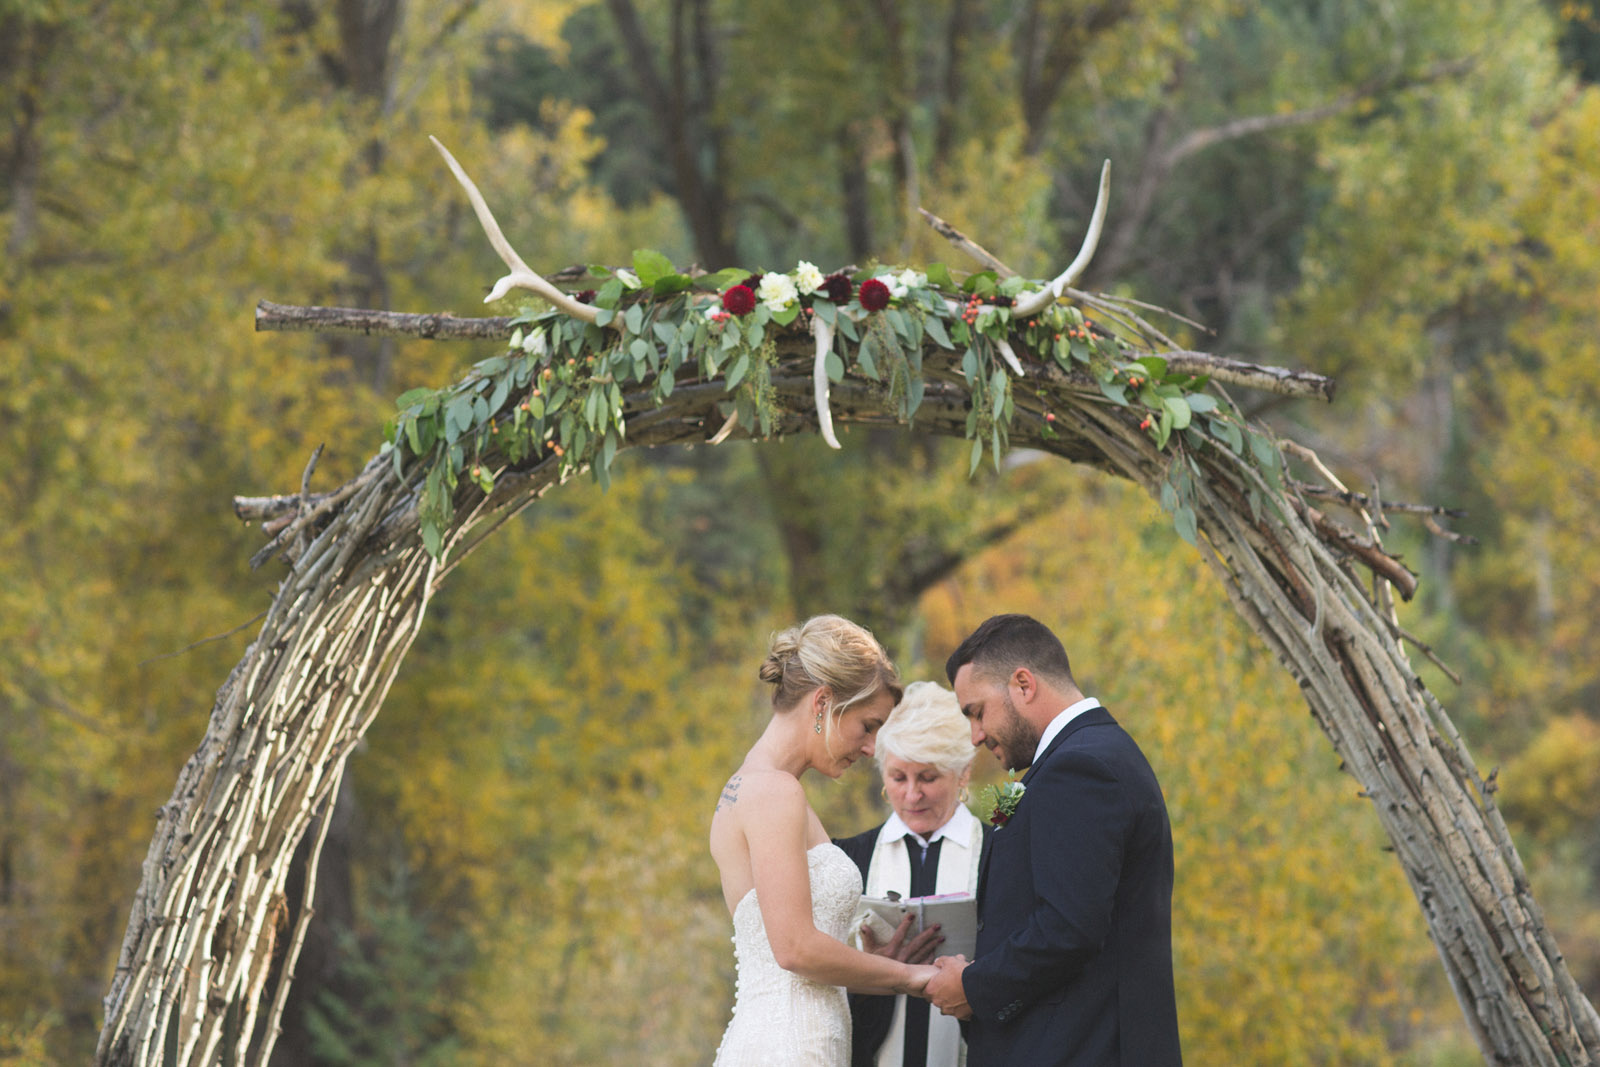 093-bride-and-groom-praying-during-private-elopement-wedding-ceremony-in-durango-co-forest